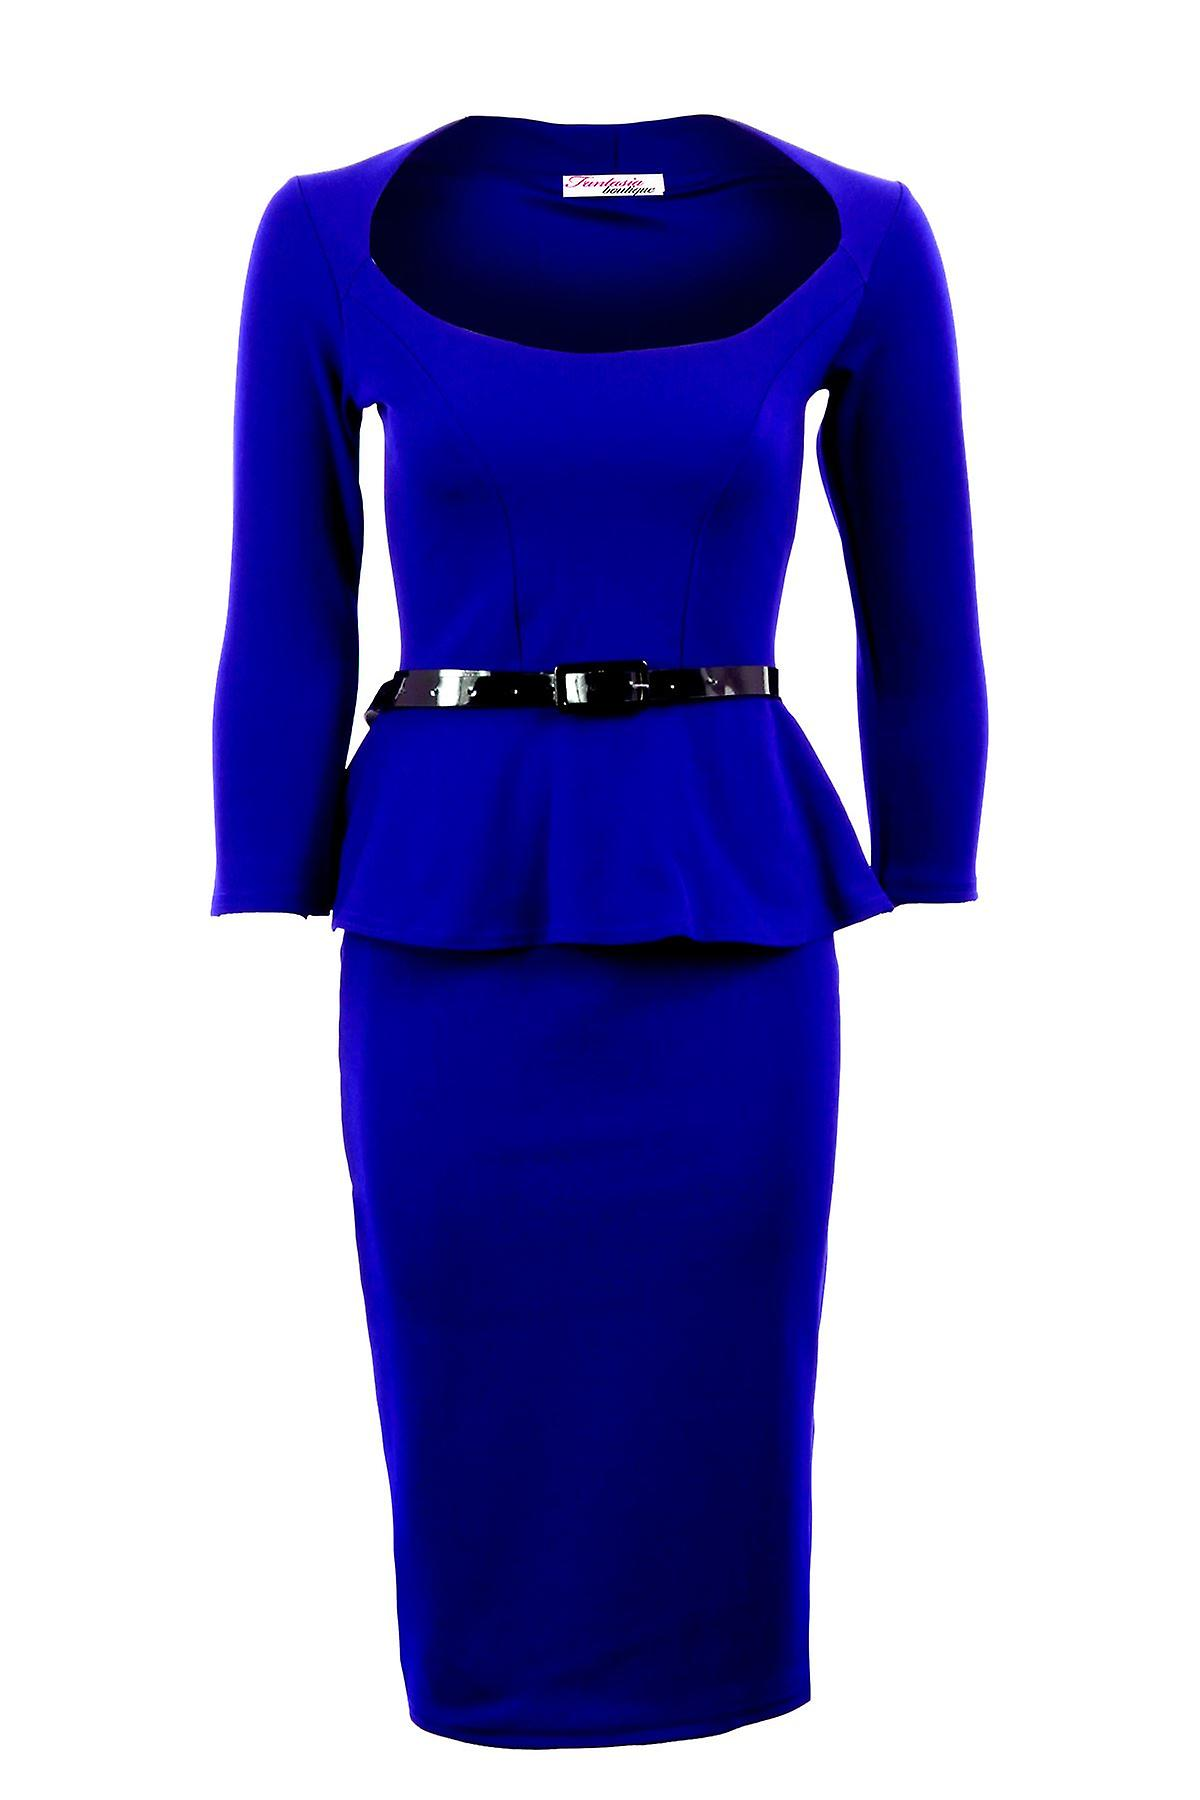 Ladies Long Sleeve Belted Peplum Knee Length Frill Bodycon Womens Dress